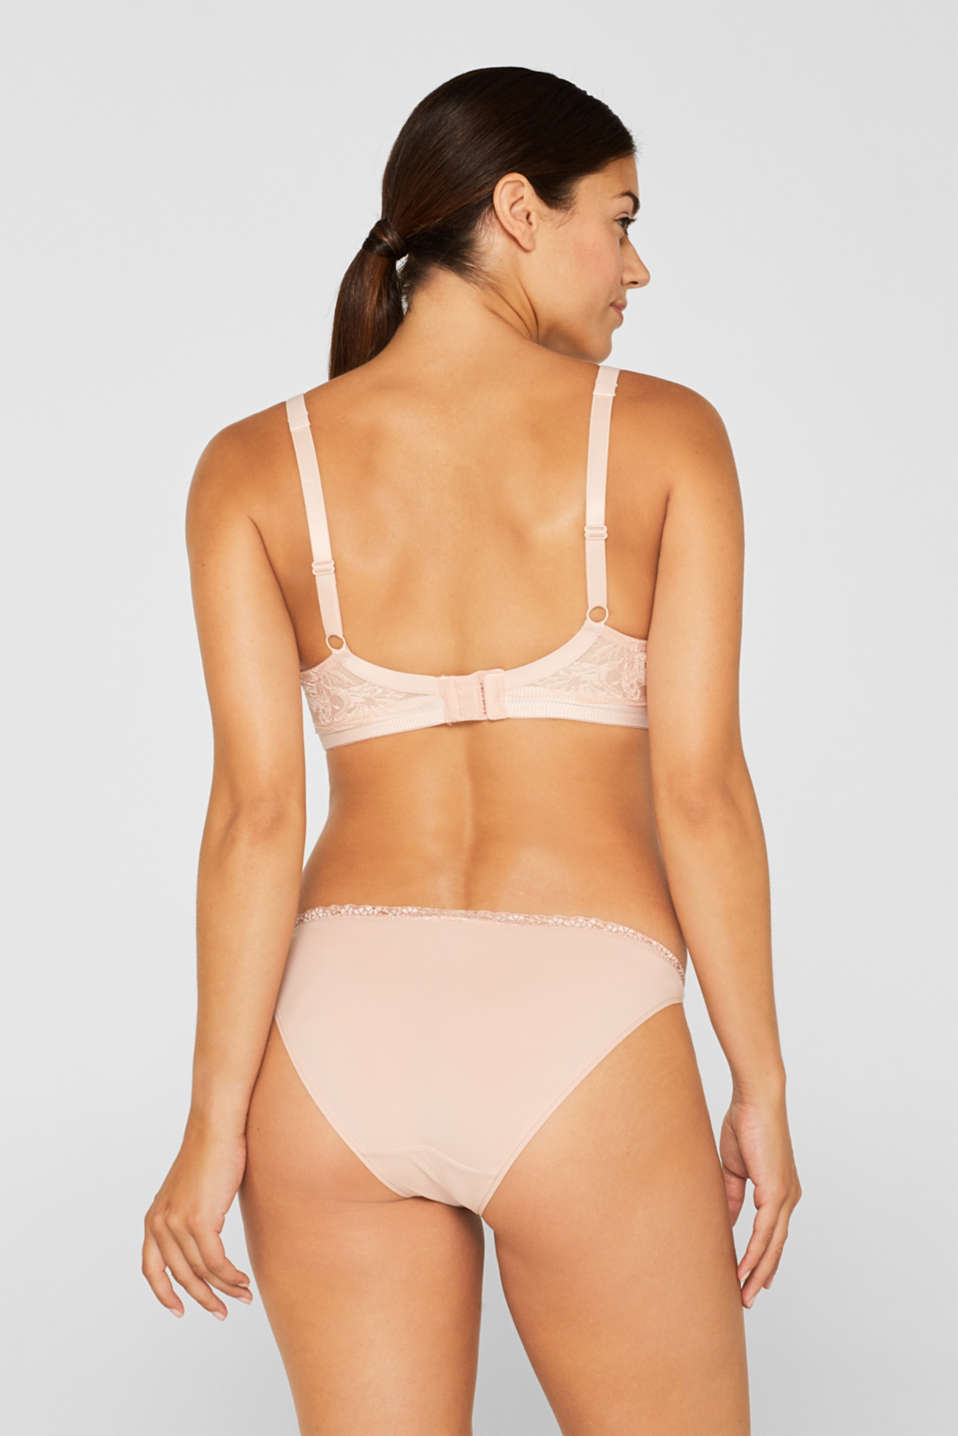 Padded underwire bra with lace, for larger cup sizes, PASTEL ORANGE, detail image number 1